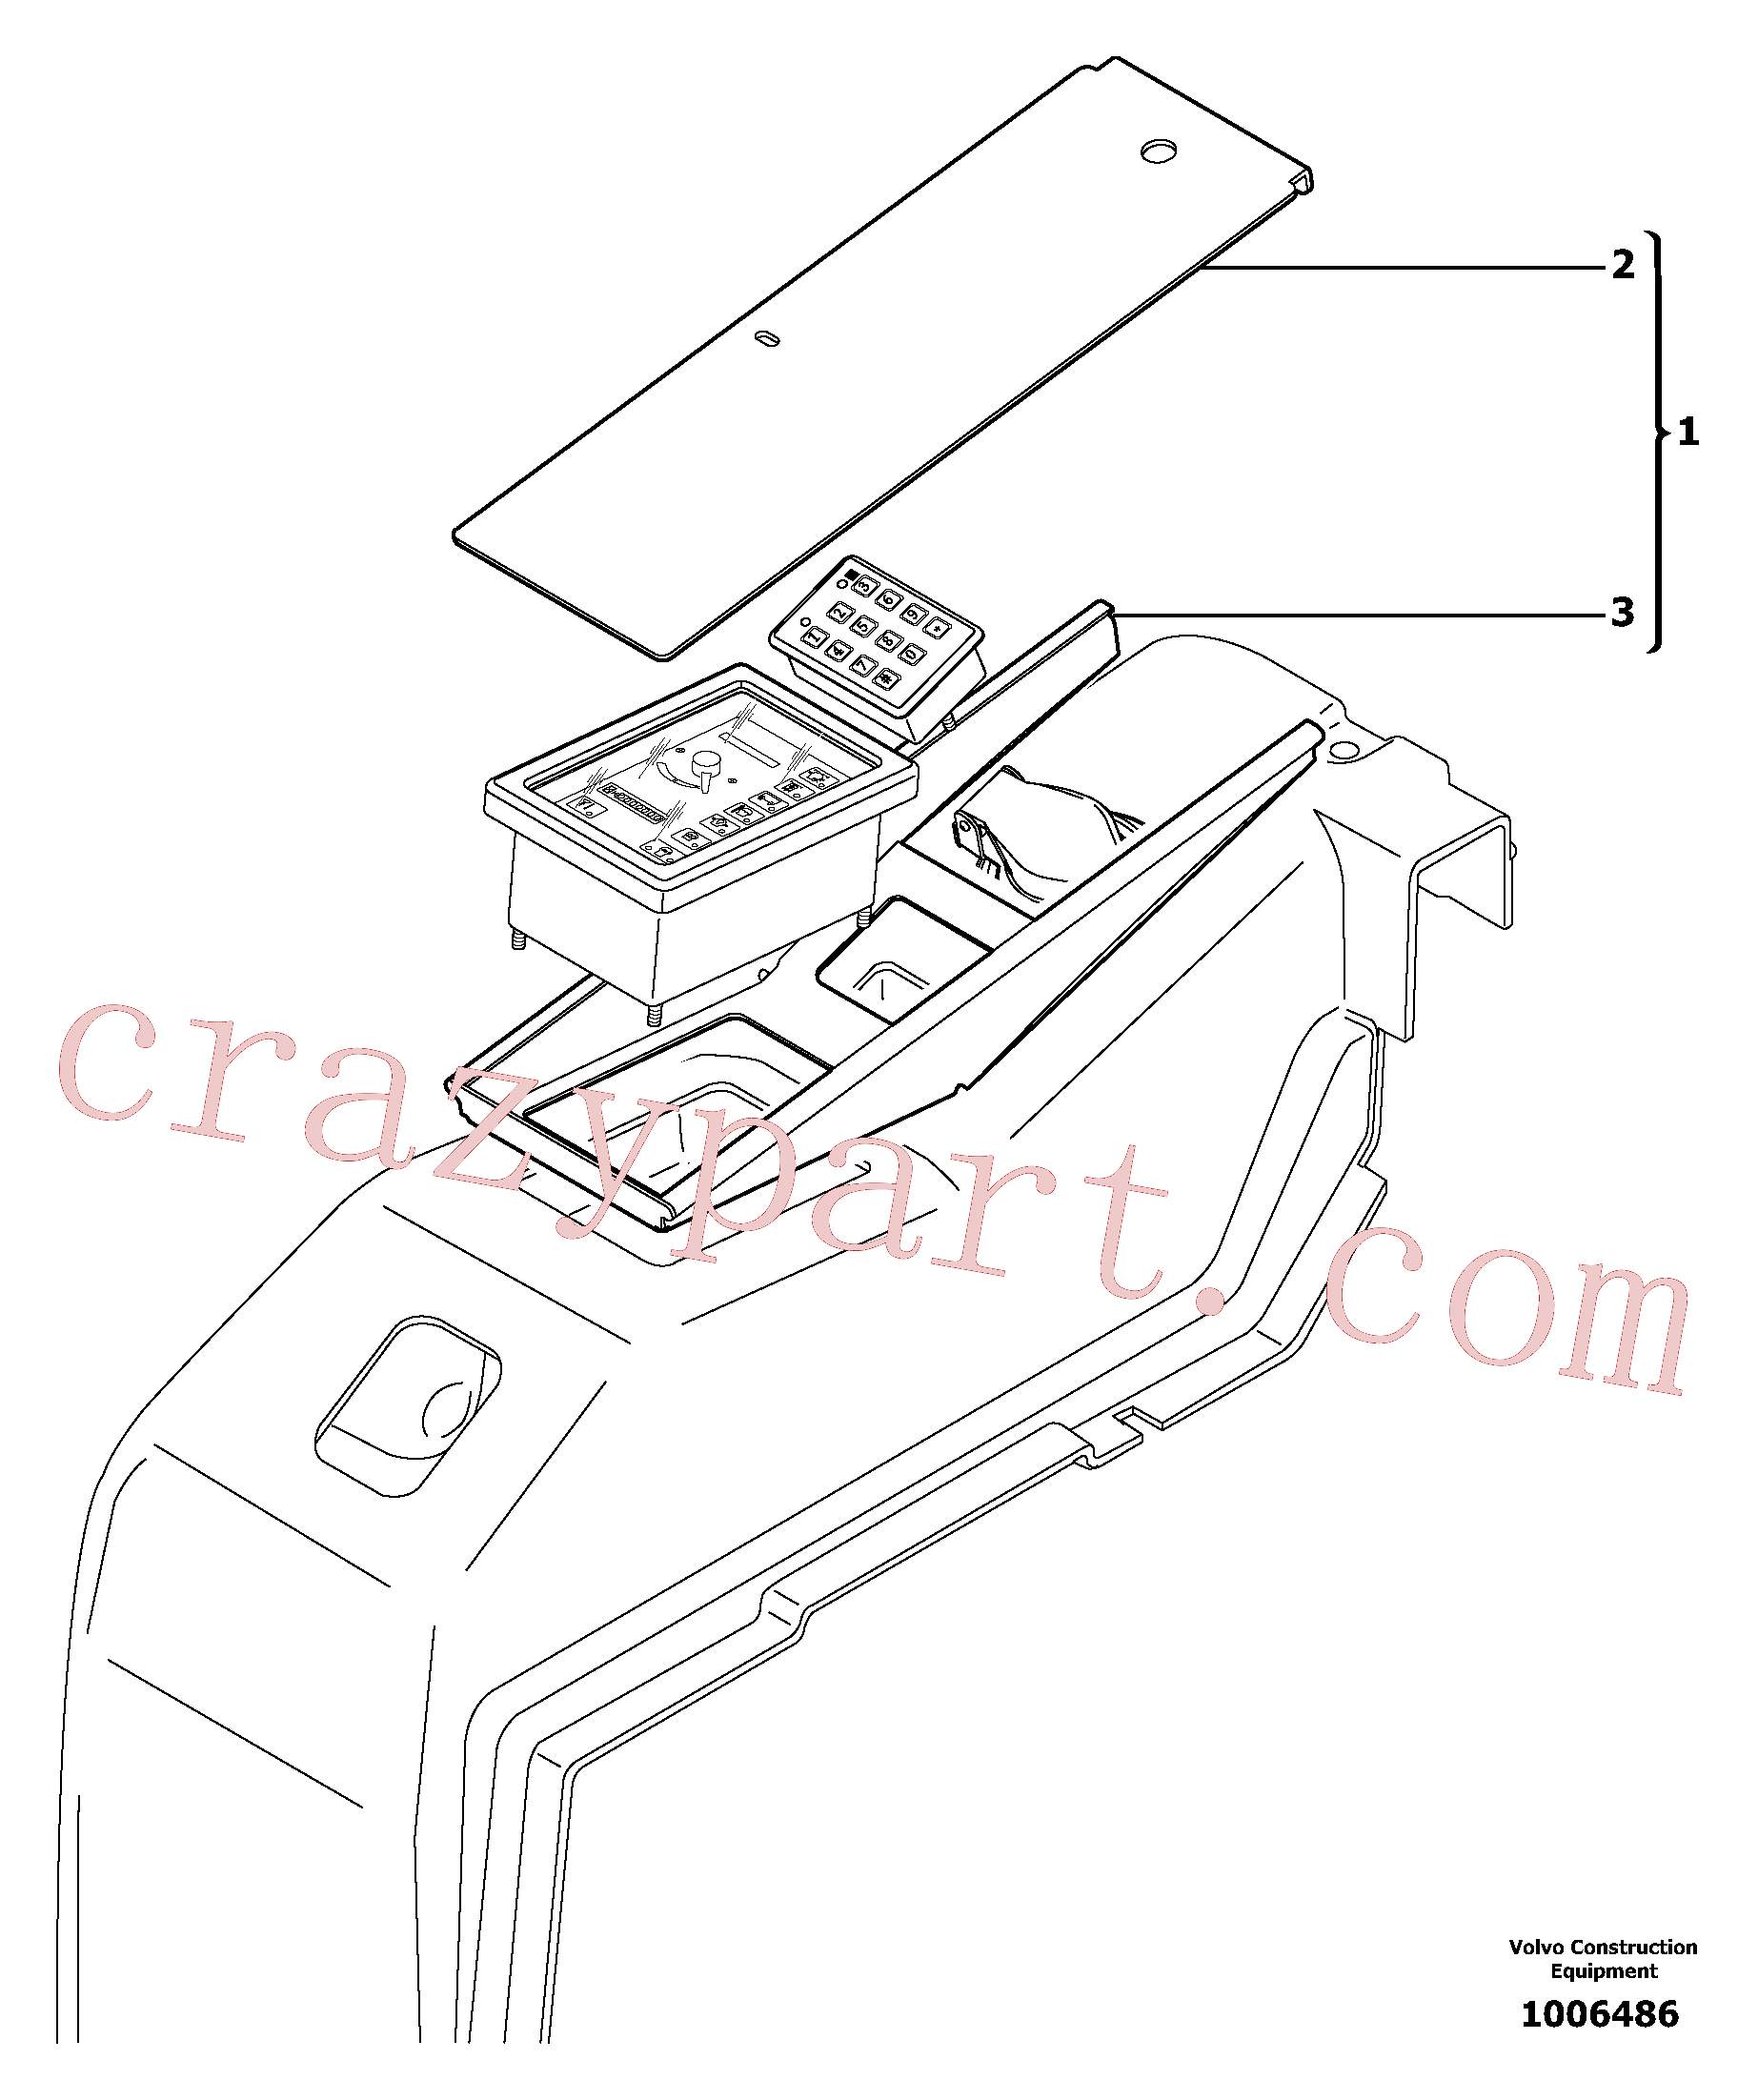 VOE11801736 for Volvo Anti-vandalism equipment(1006486 assembly)